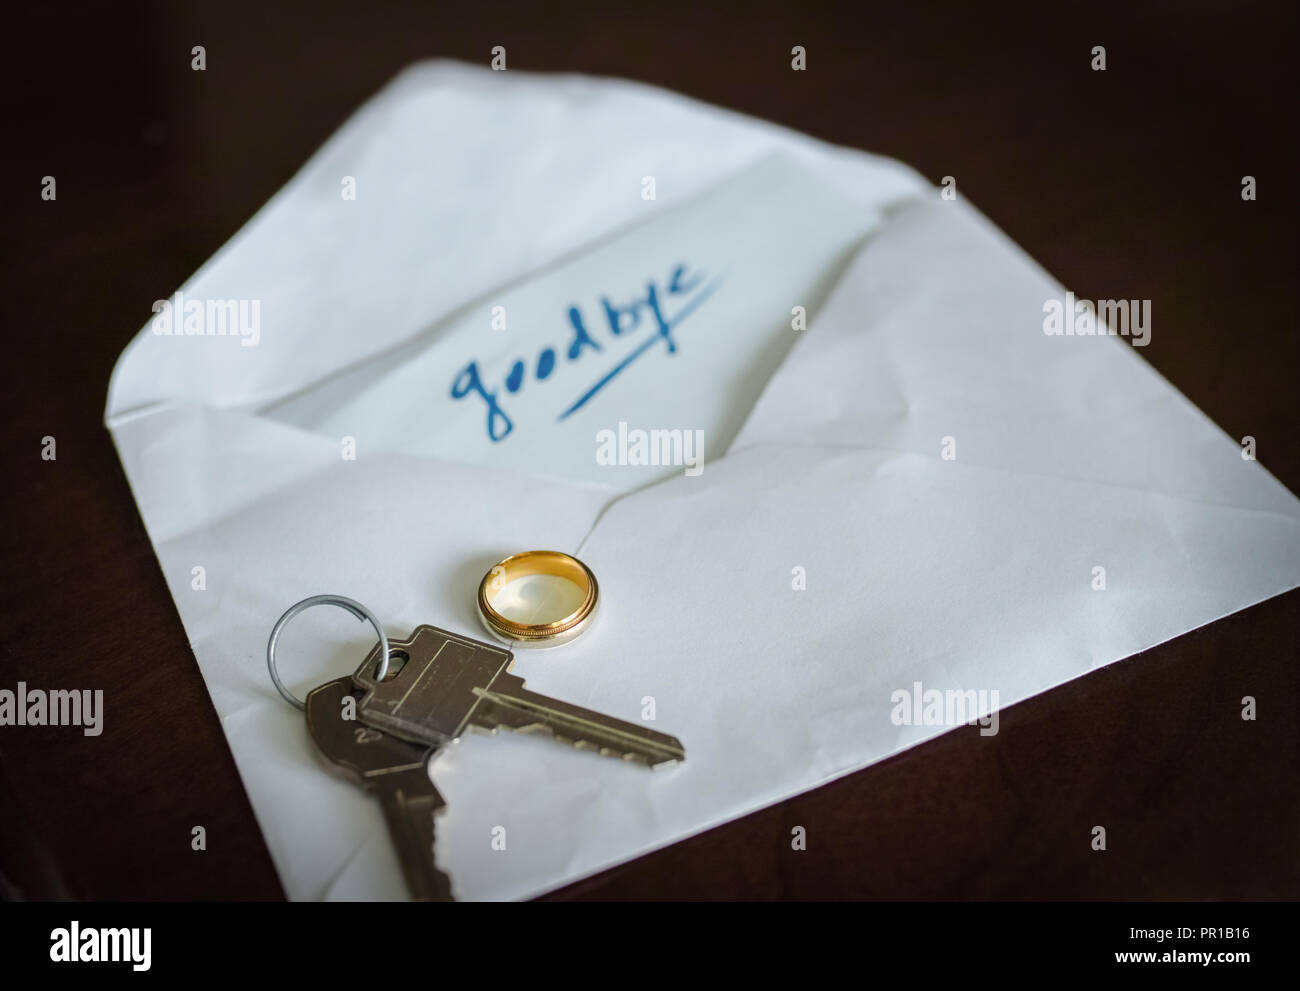 On the table, she or he, left the keys, the wedding ring and a enveloppe with this word inside: Goodbye - Stock Image